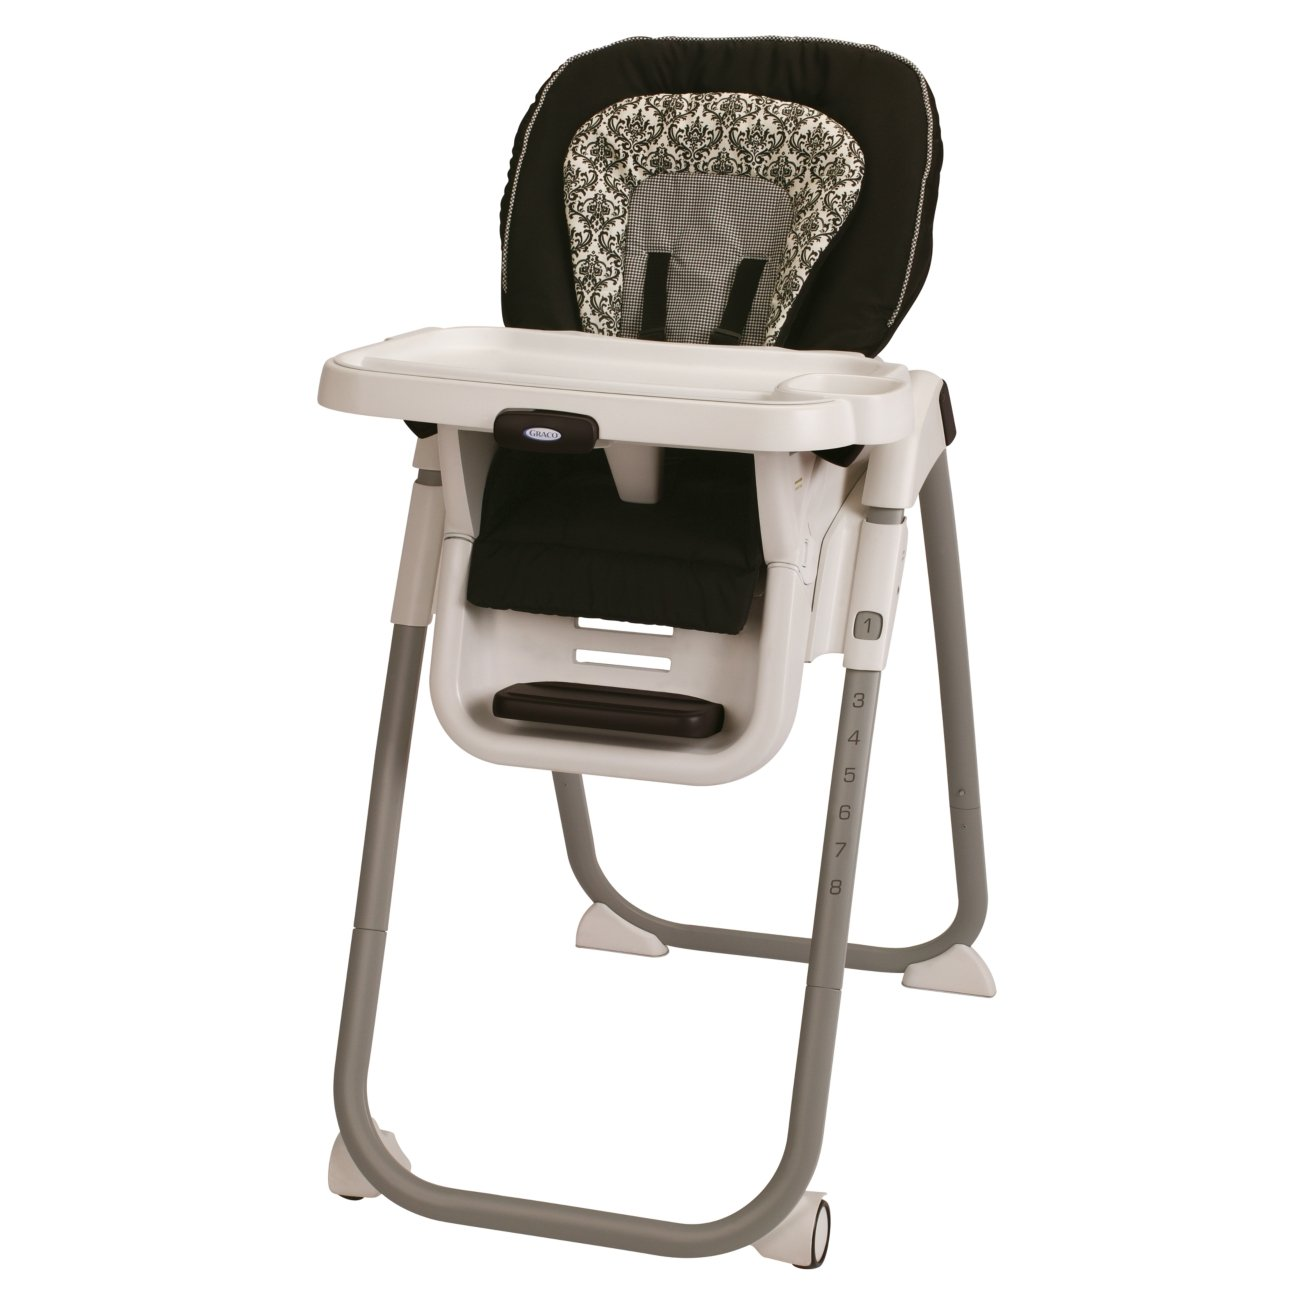 top 10 best baby adjustable high chairs 2016 2017 on flipboard